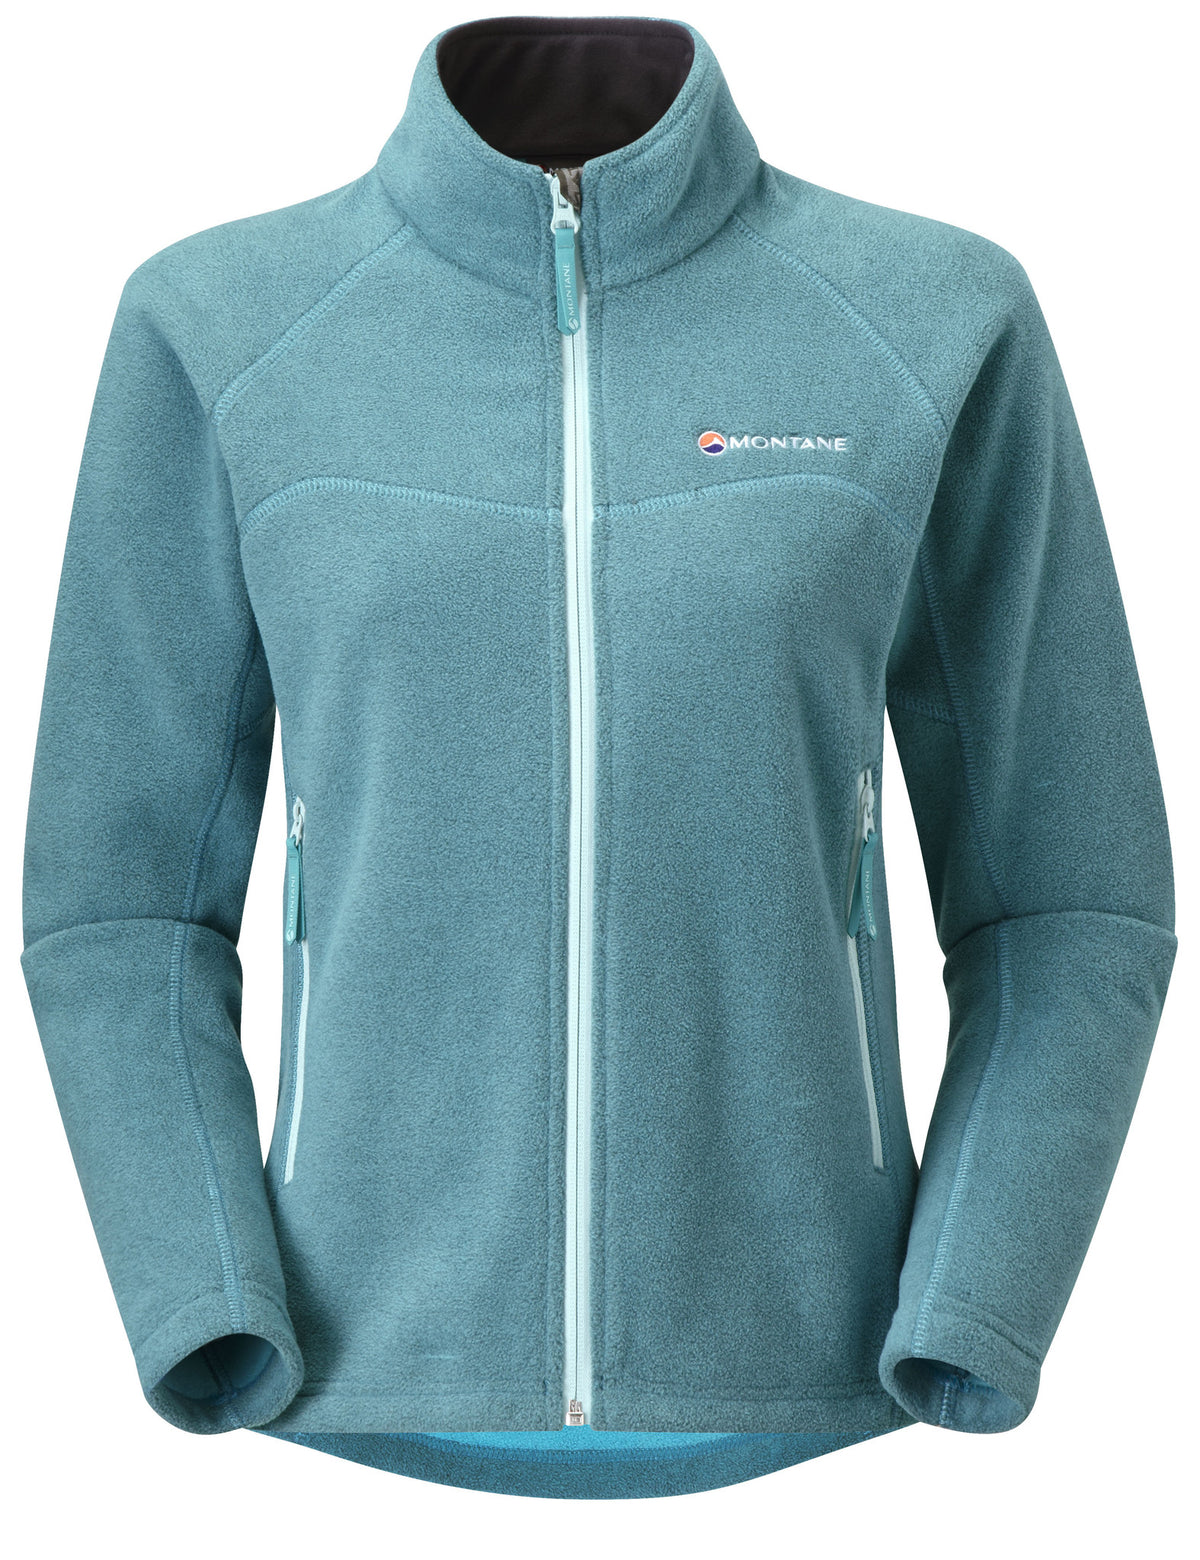 Montane-Women's Snow Storm Jacket-Womens Insulation & Down-Peacock-XS-Gearaholic.com.sg